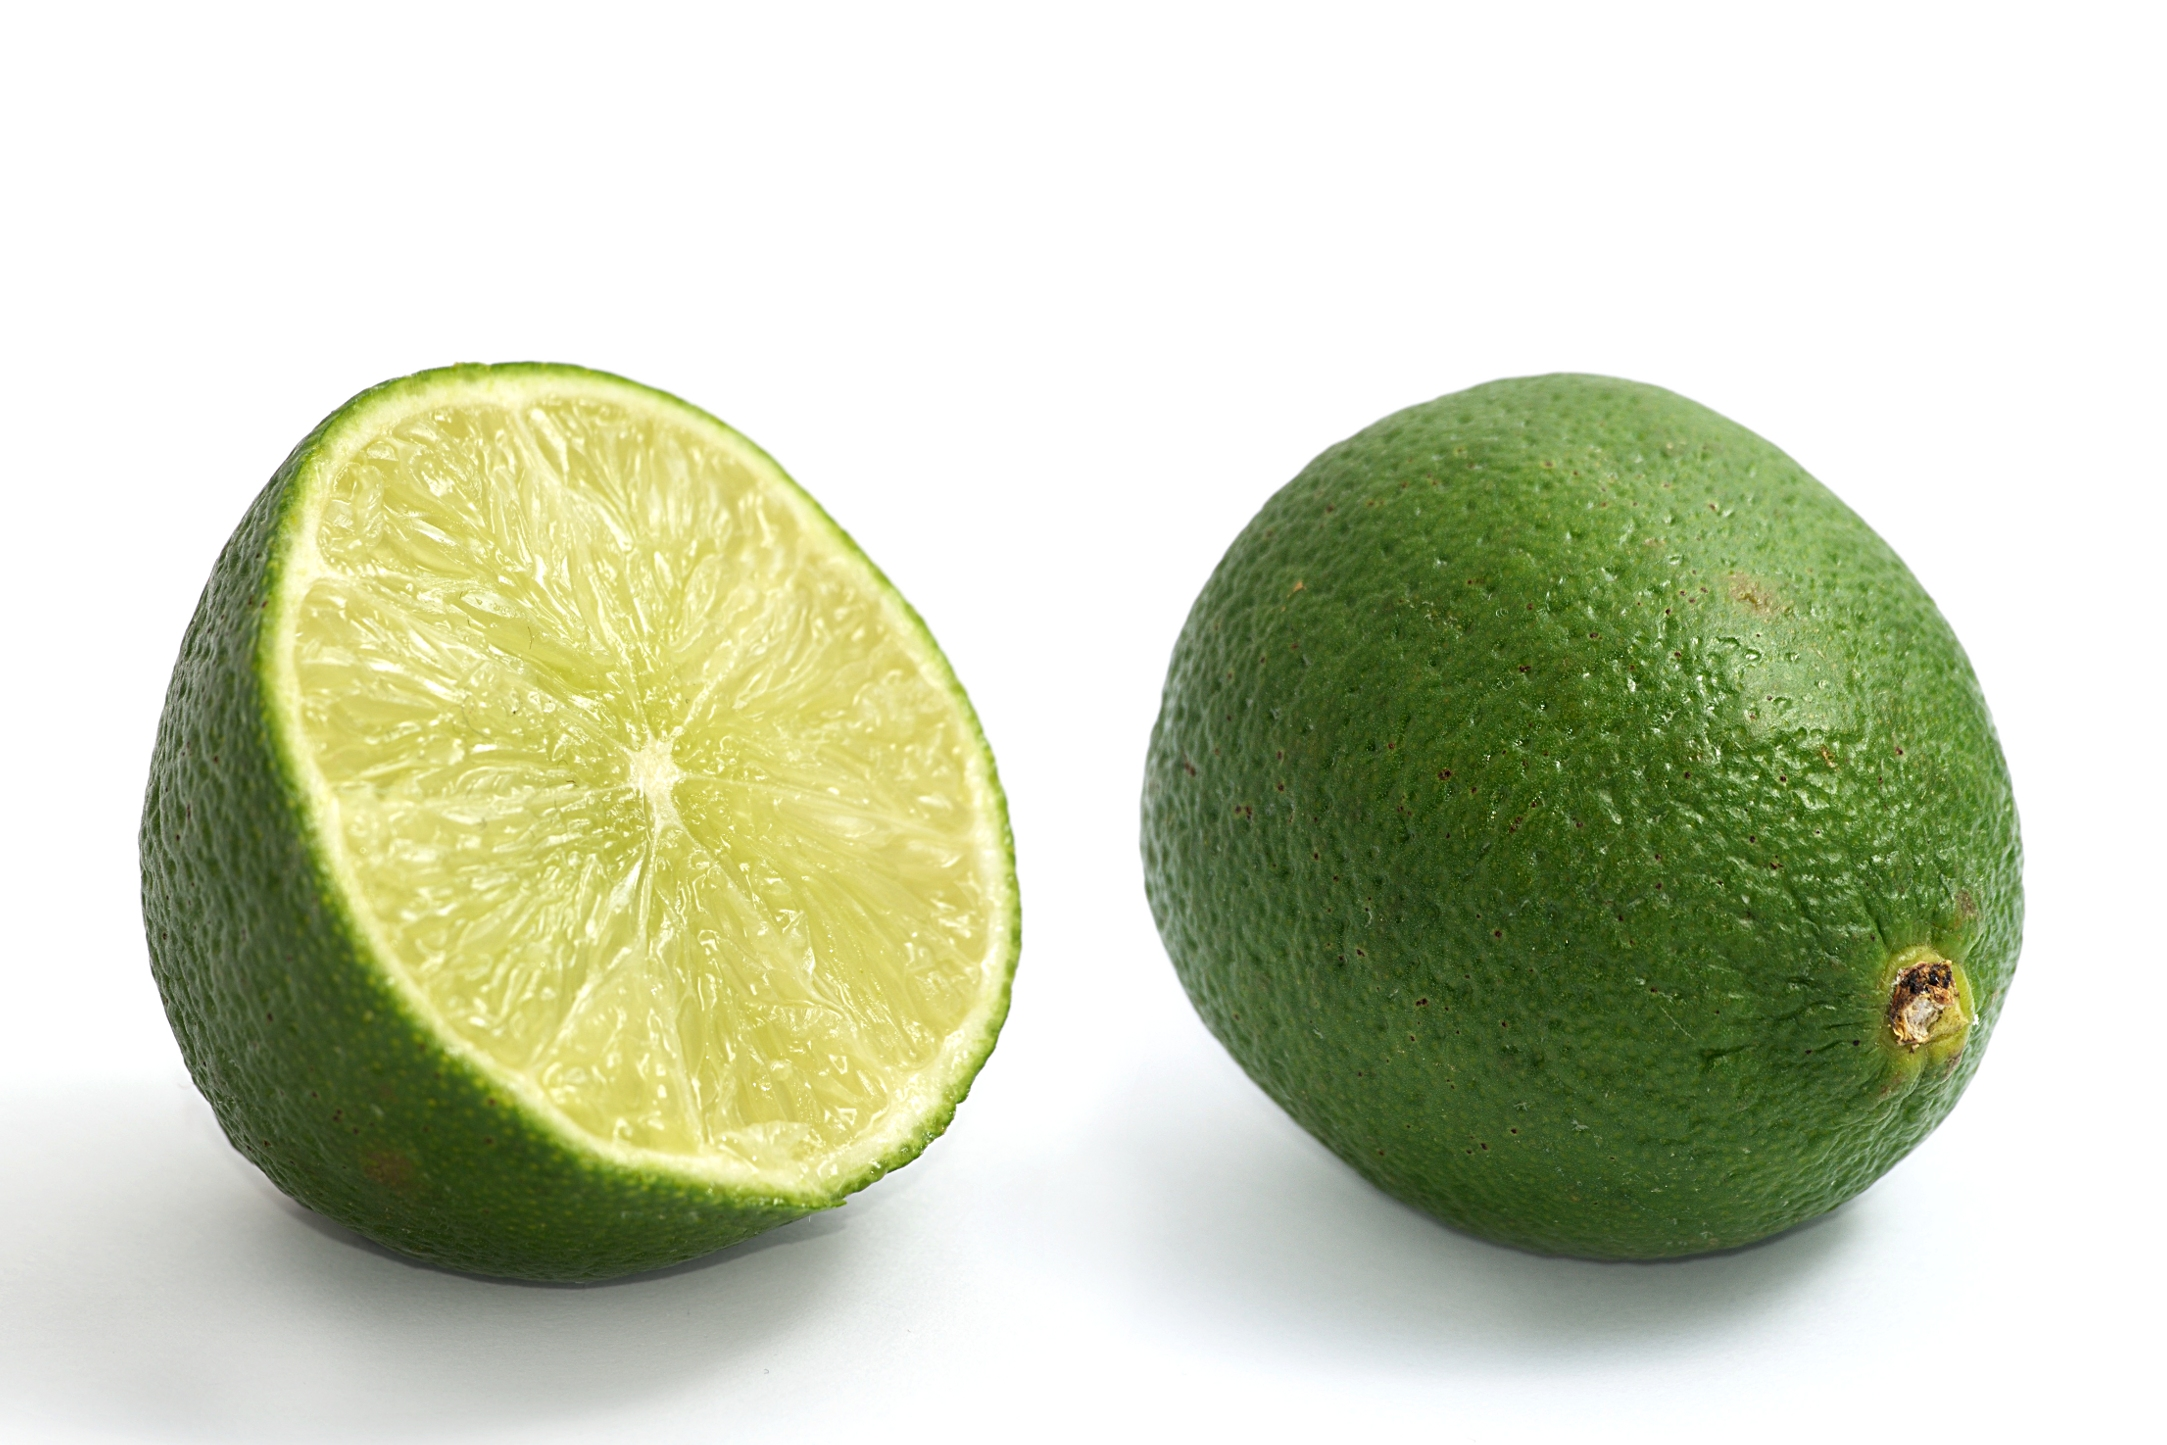 Can I substitute cream of tartar for lime juice?